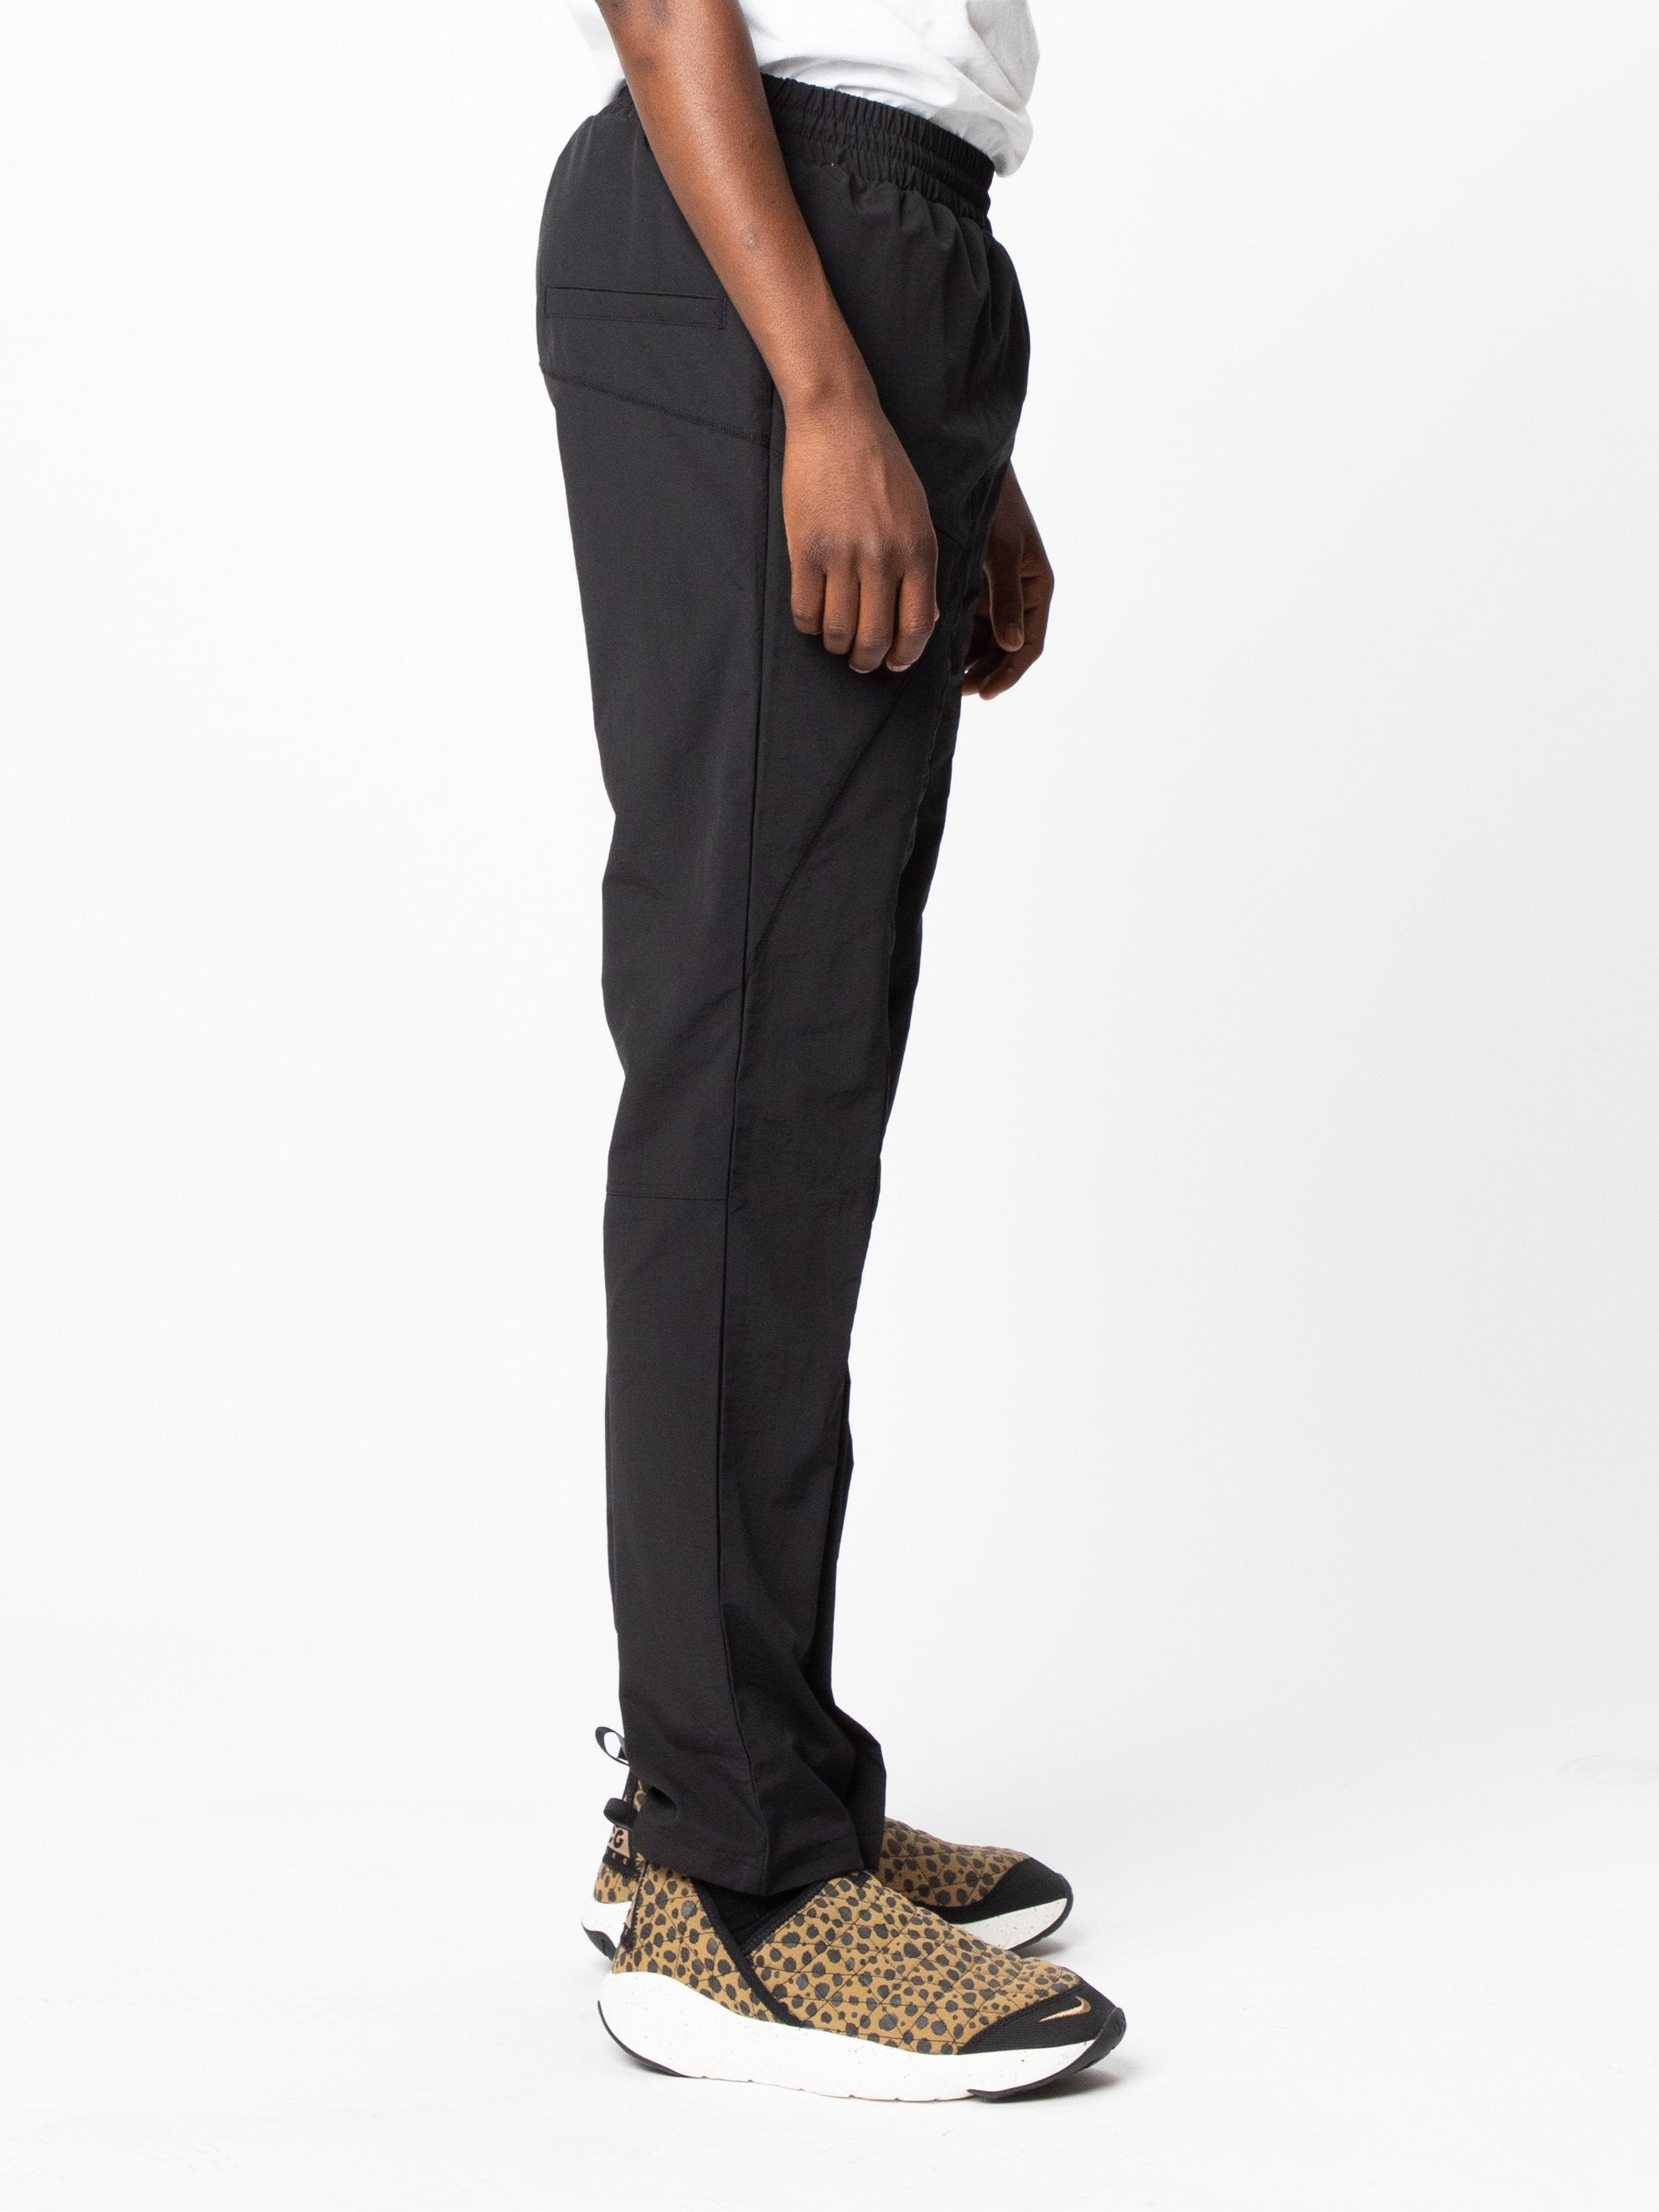 Black Woven Pant Curved Stitch Track Pants 4